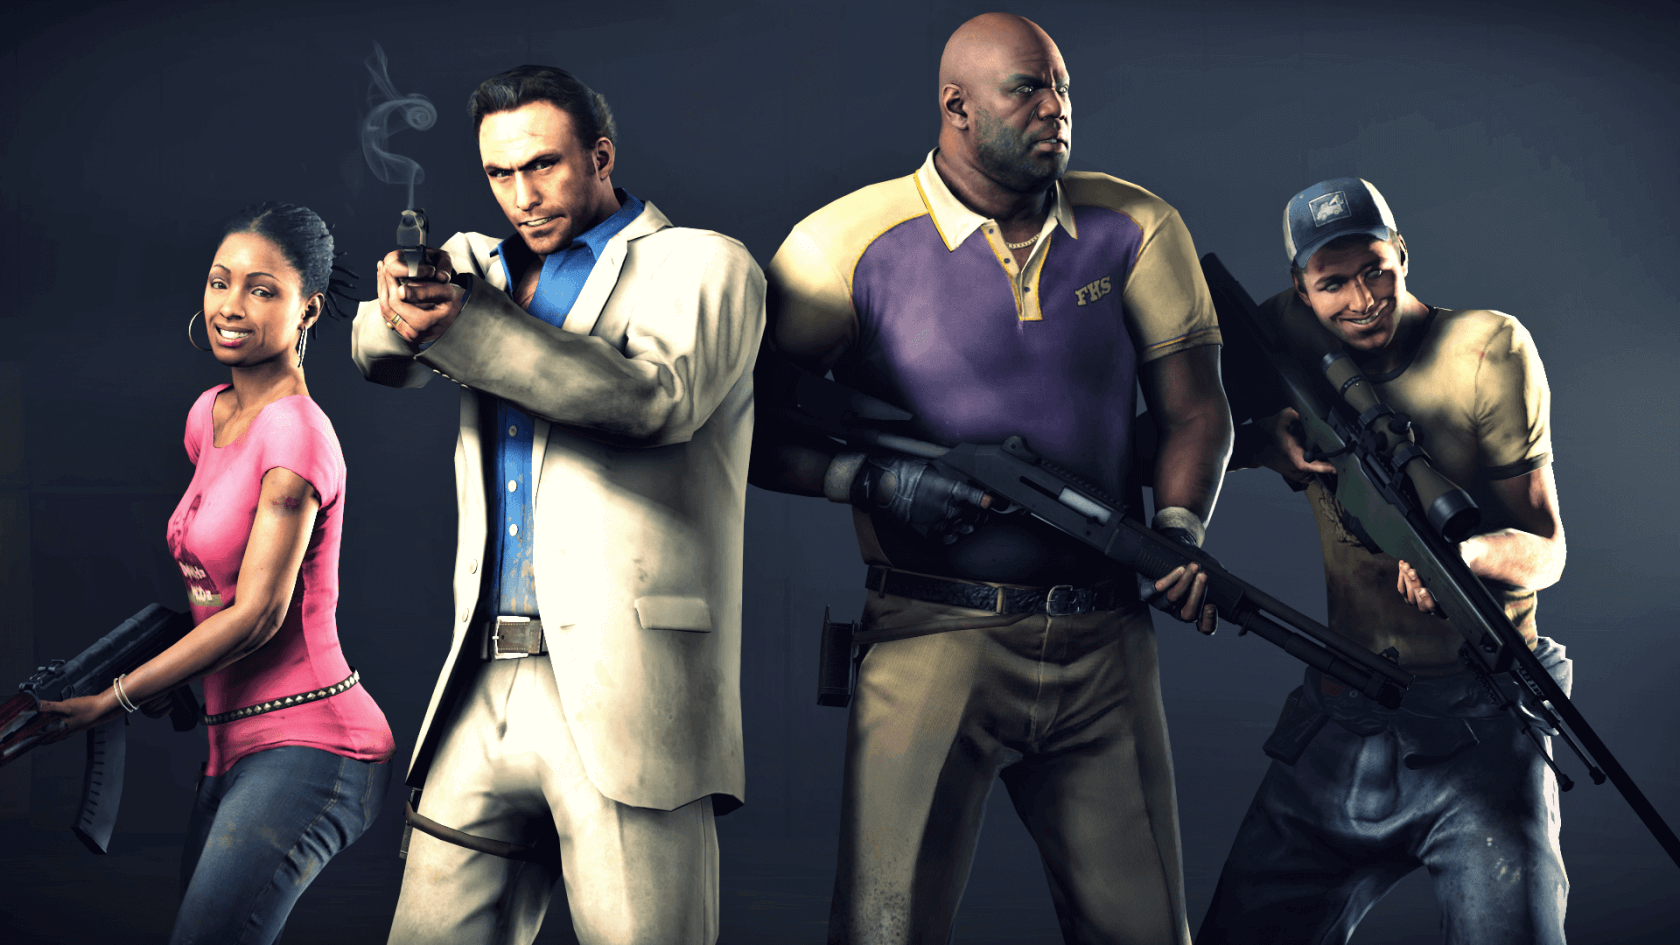 Valve confirms Left for Dead 3 is not in development